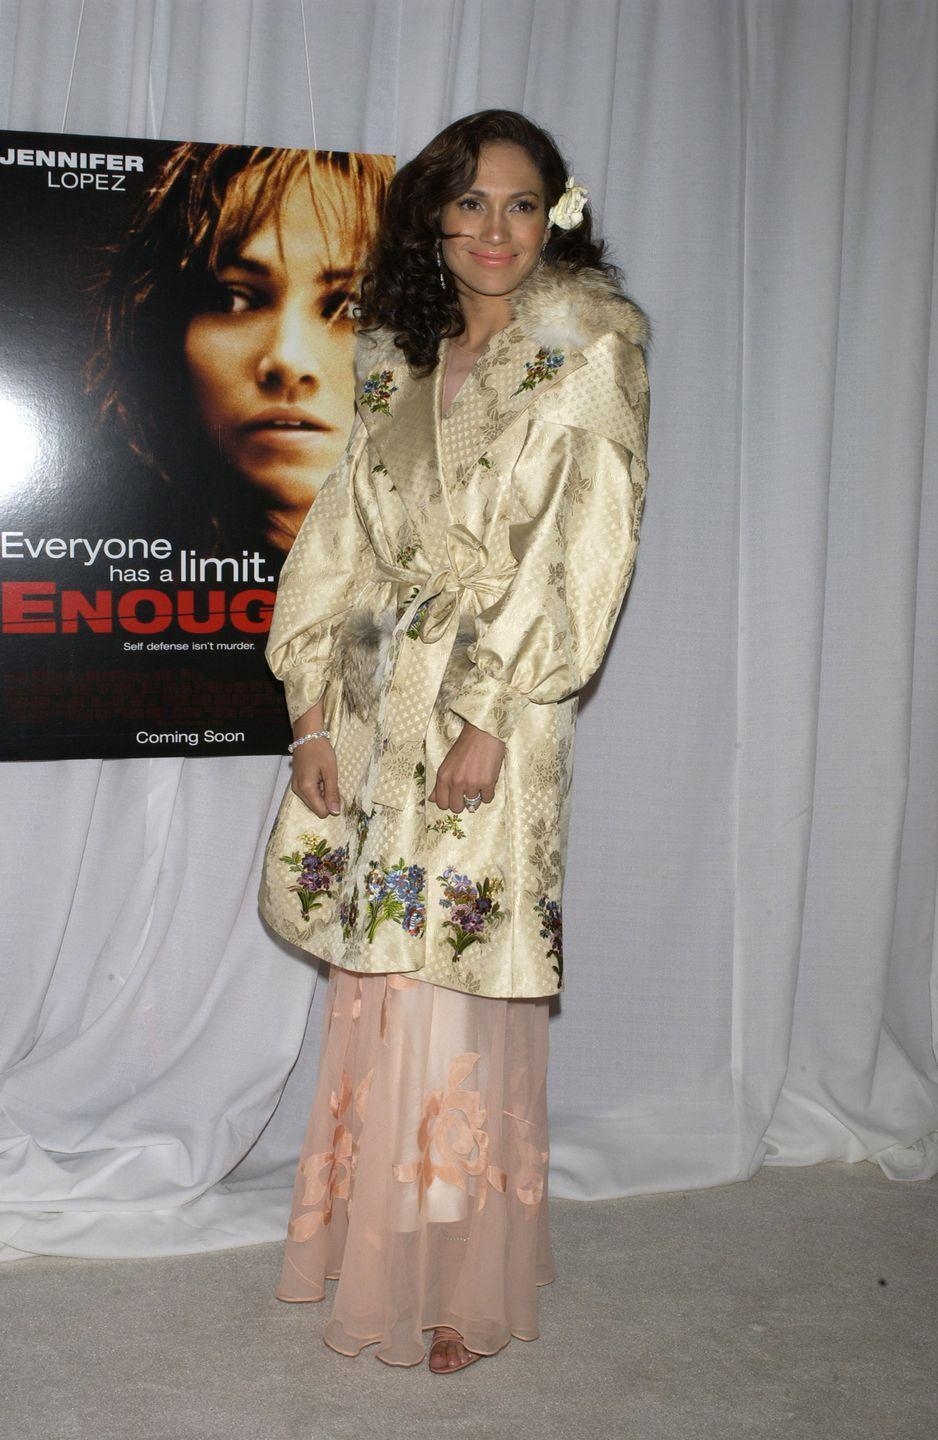 <p>Ah the coveted flower clip. Leave it to J.Lo to nail a trend. She wore this hair accessory with a coat that kiiiind of looks like an eclectic bathrobe to the premiere of <em>Enough </em>in New York City.</p>